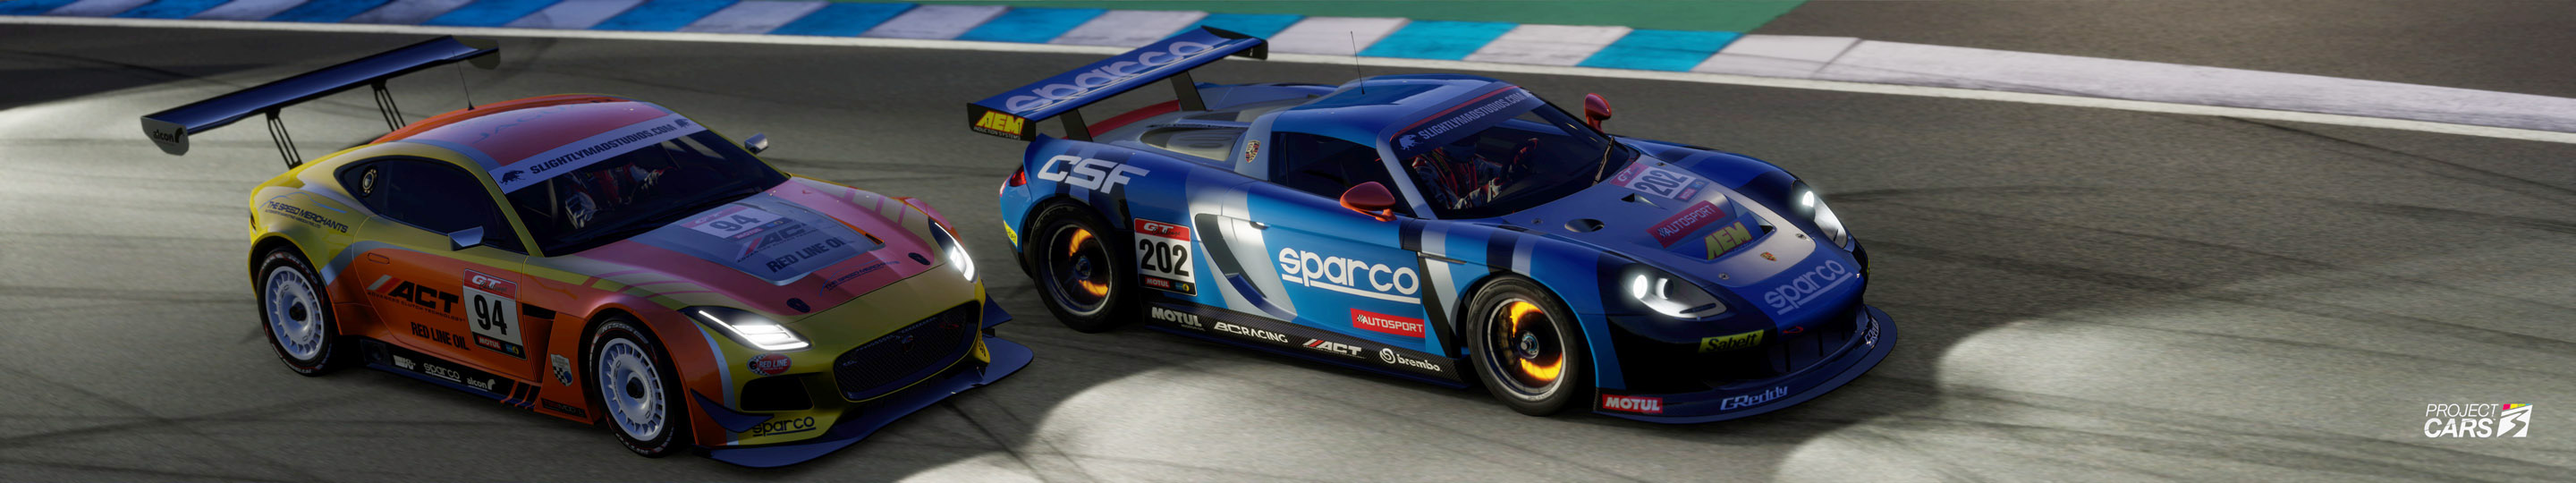 4 PROJECT CARS 3 JAG F TYPE RACING at JEREZ copy.jpg